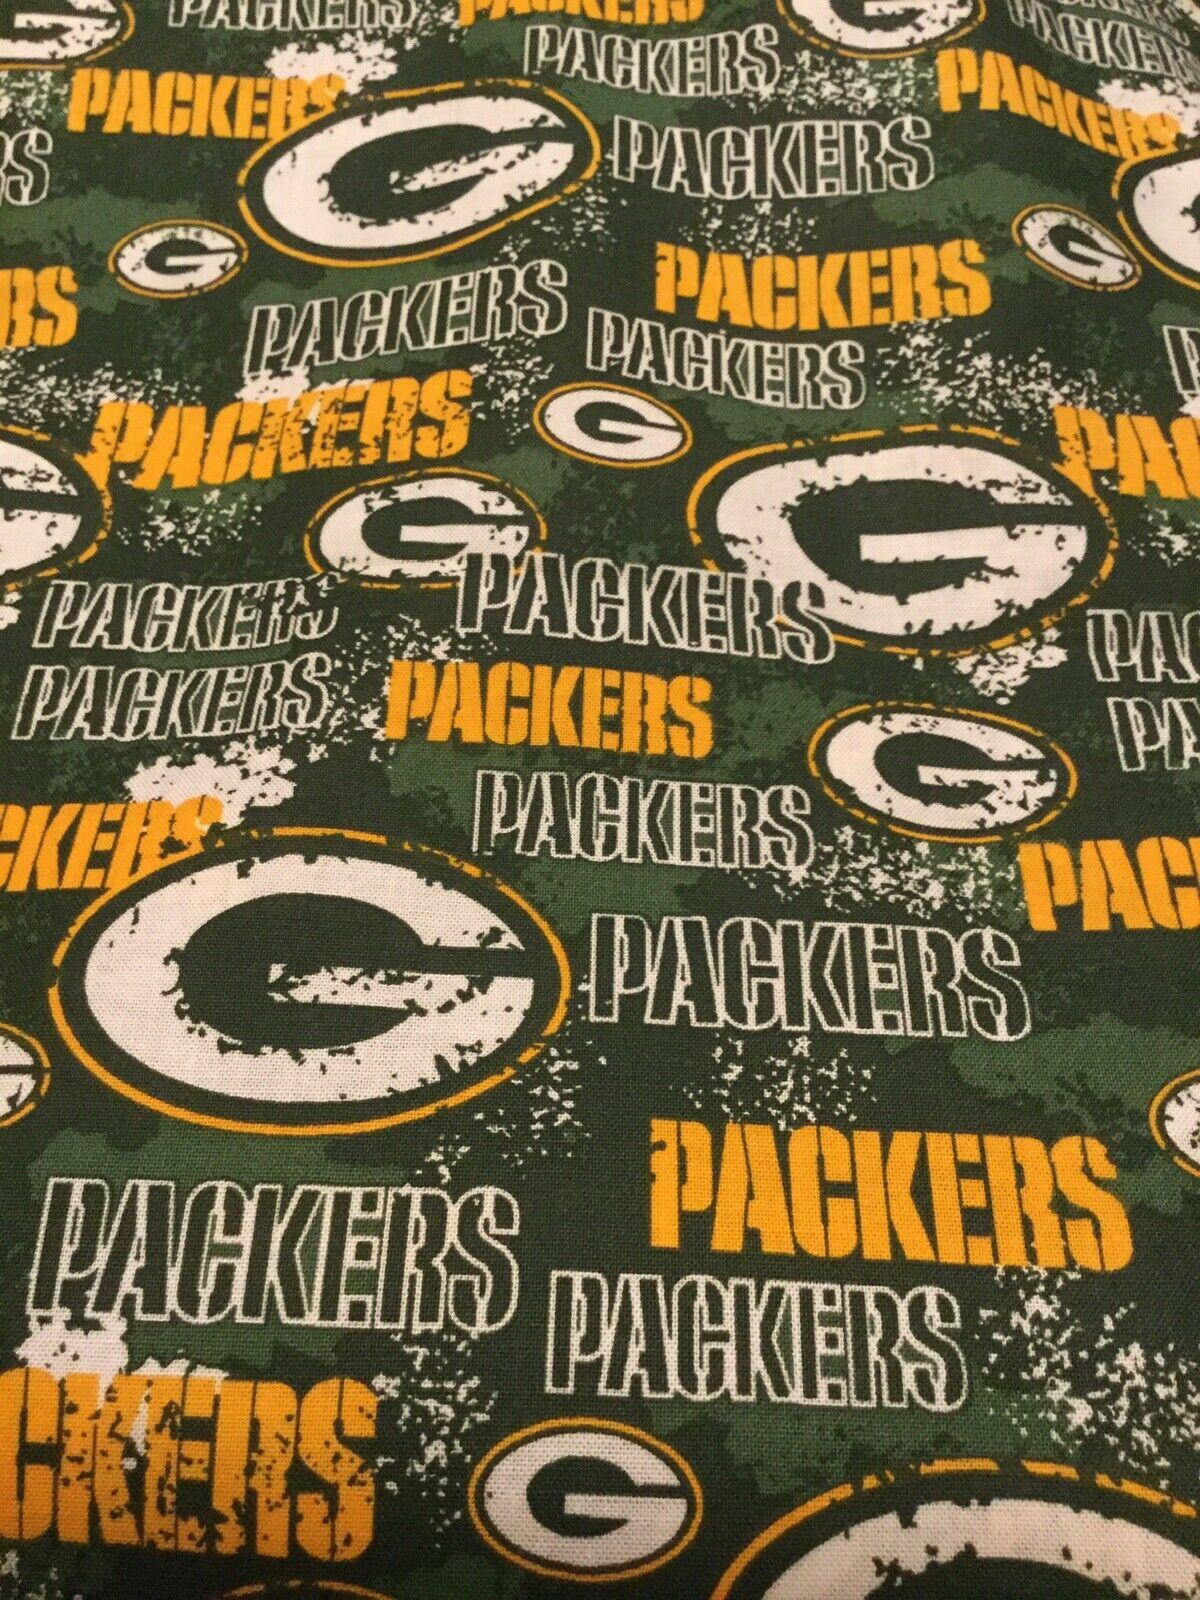 Nfl Green Bay Packers 100 Cotton Fabric 1 2 Yard For Sale Online Ebay